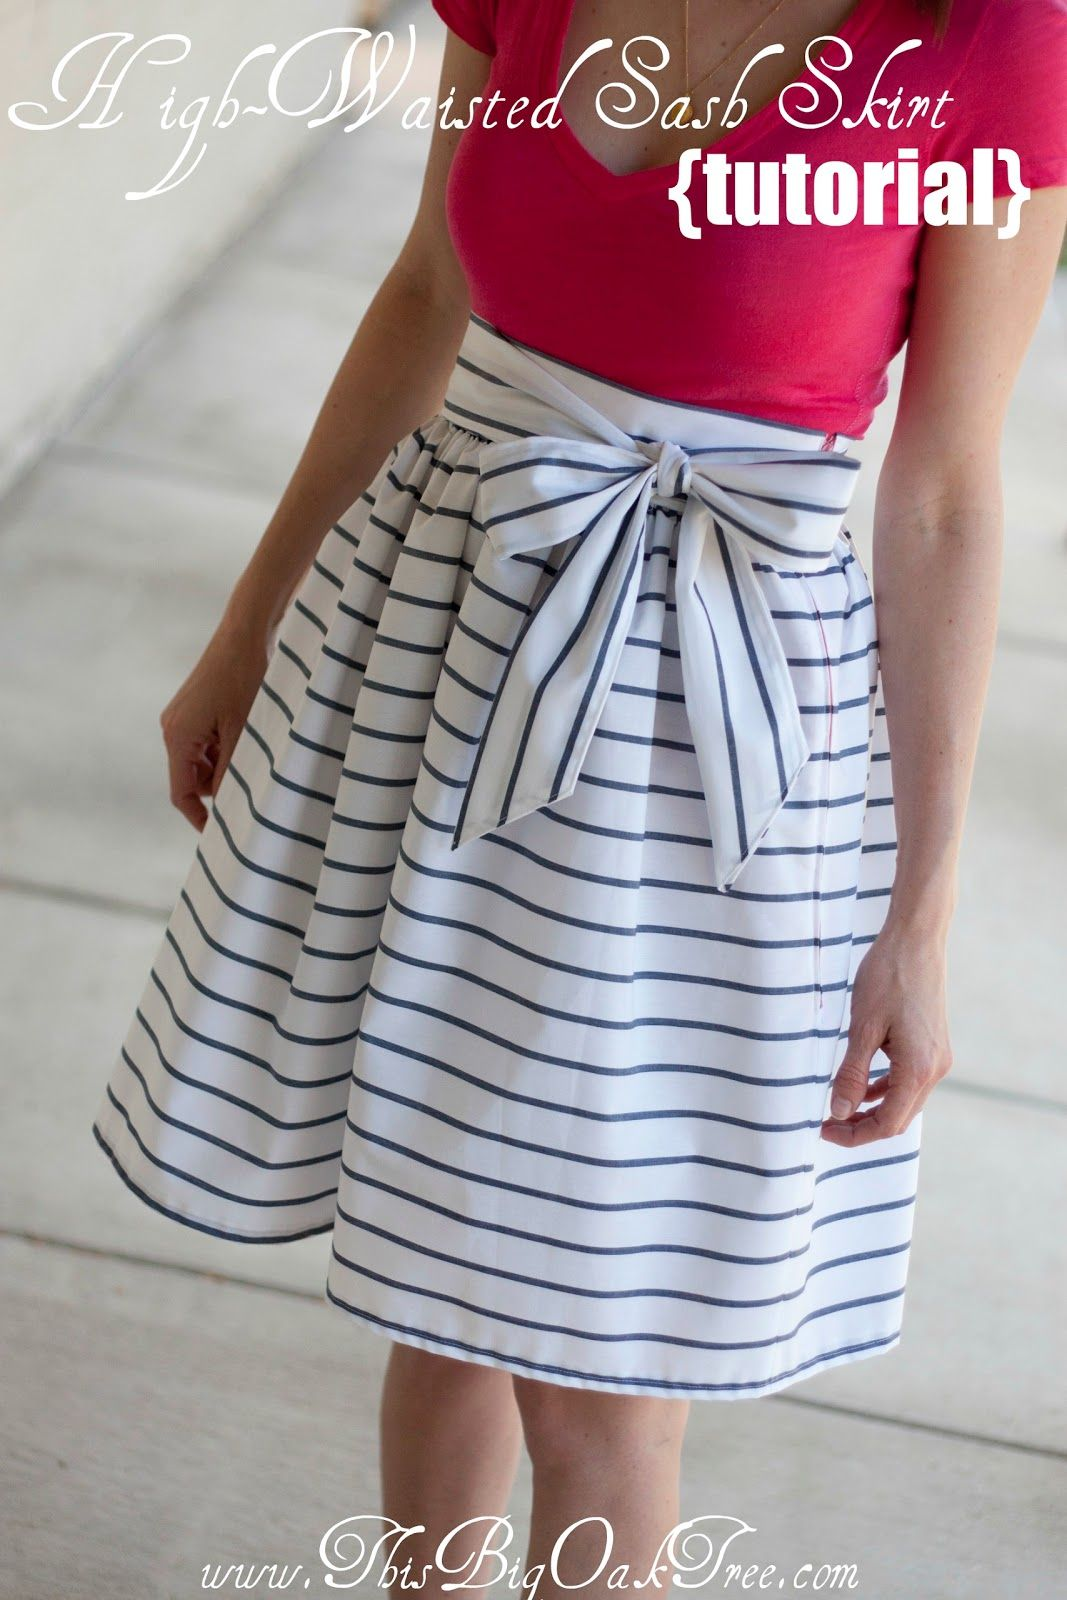 High waisted sash skirt